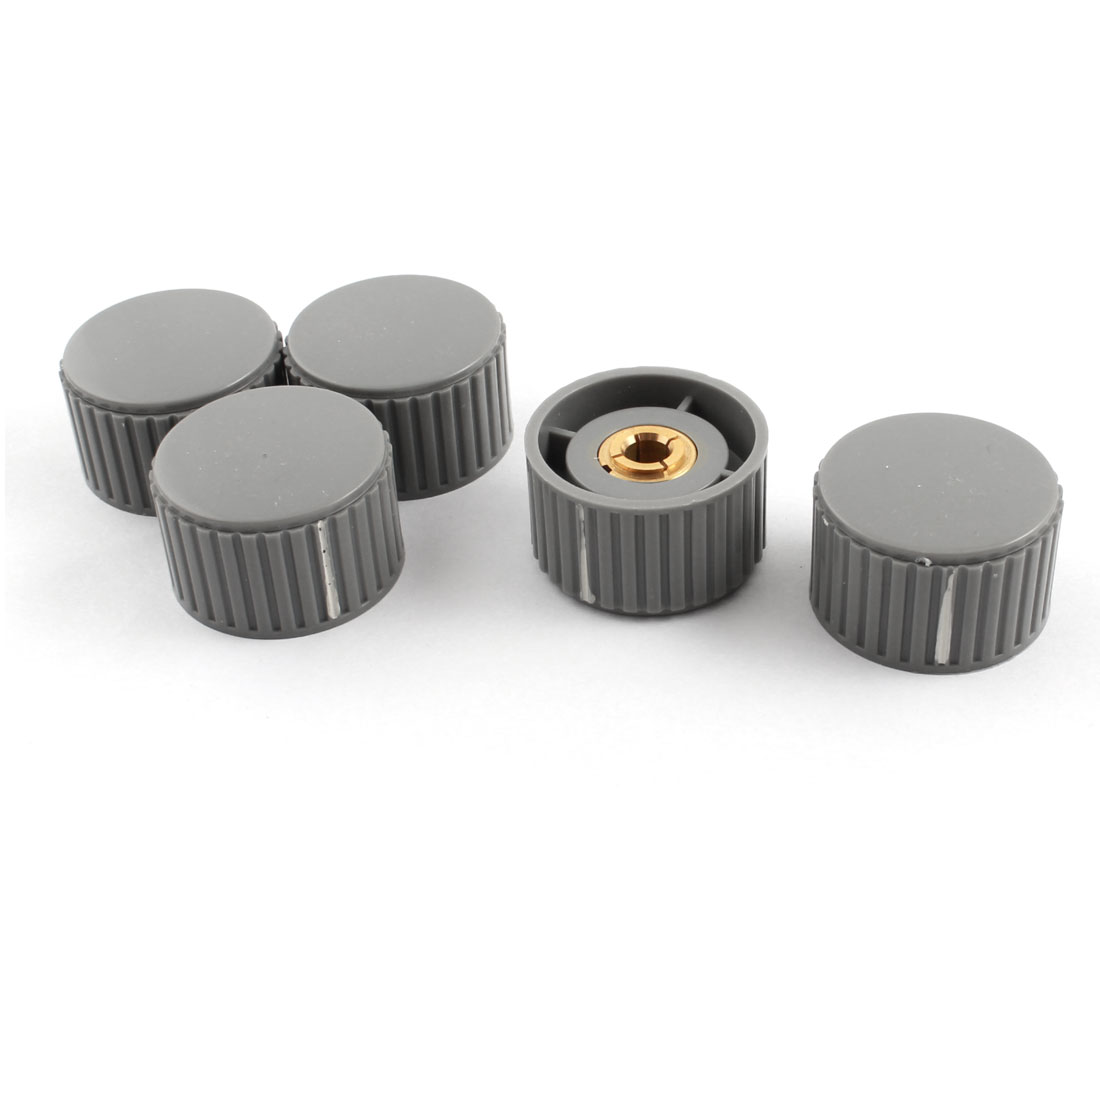 5Pcs 6mm Dia Hole Gray Plastic Rotary Nonslip Volume Control Potentiometer Encoder Knob Cap 32mm